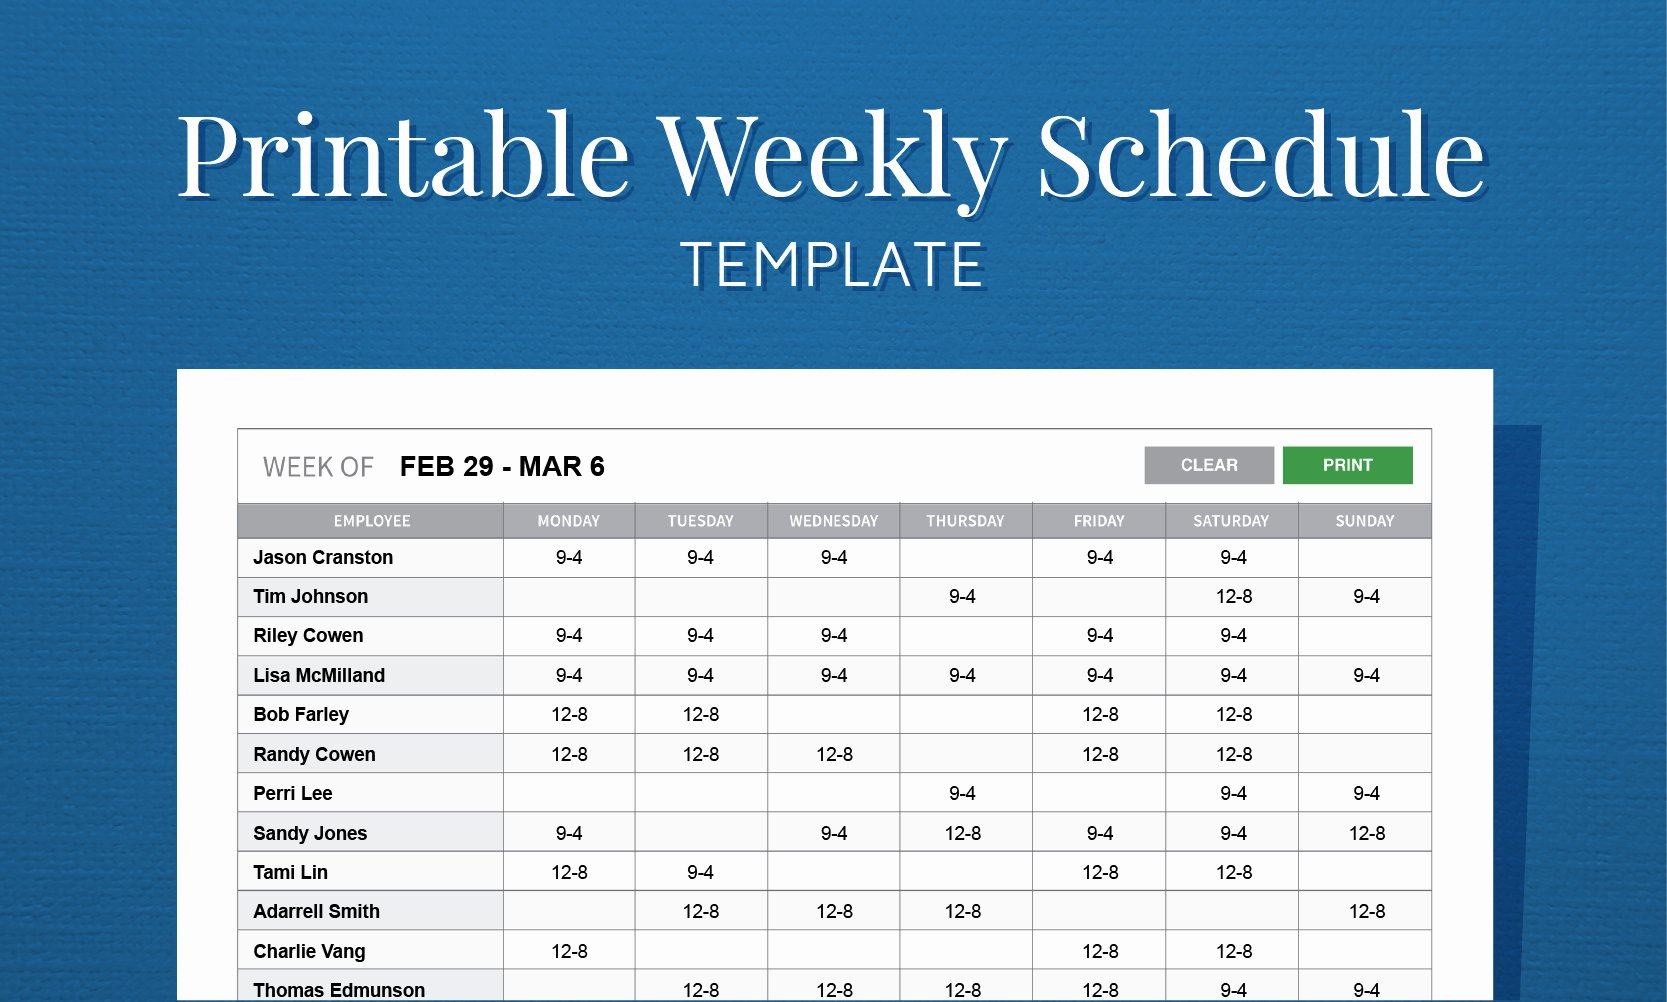 Free Weekly Work Schedule Template Luxury Job Scheduling Spreadsheet Spreadsheet Downloa Job Shop